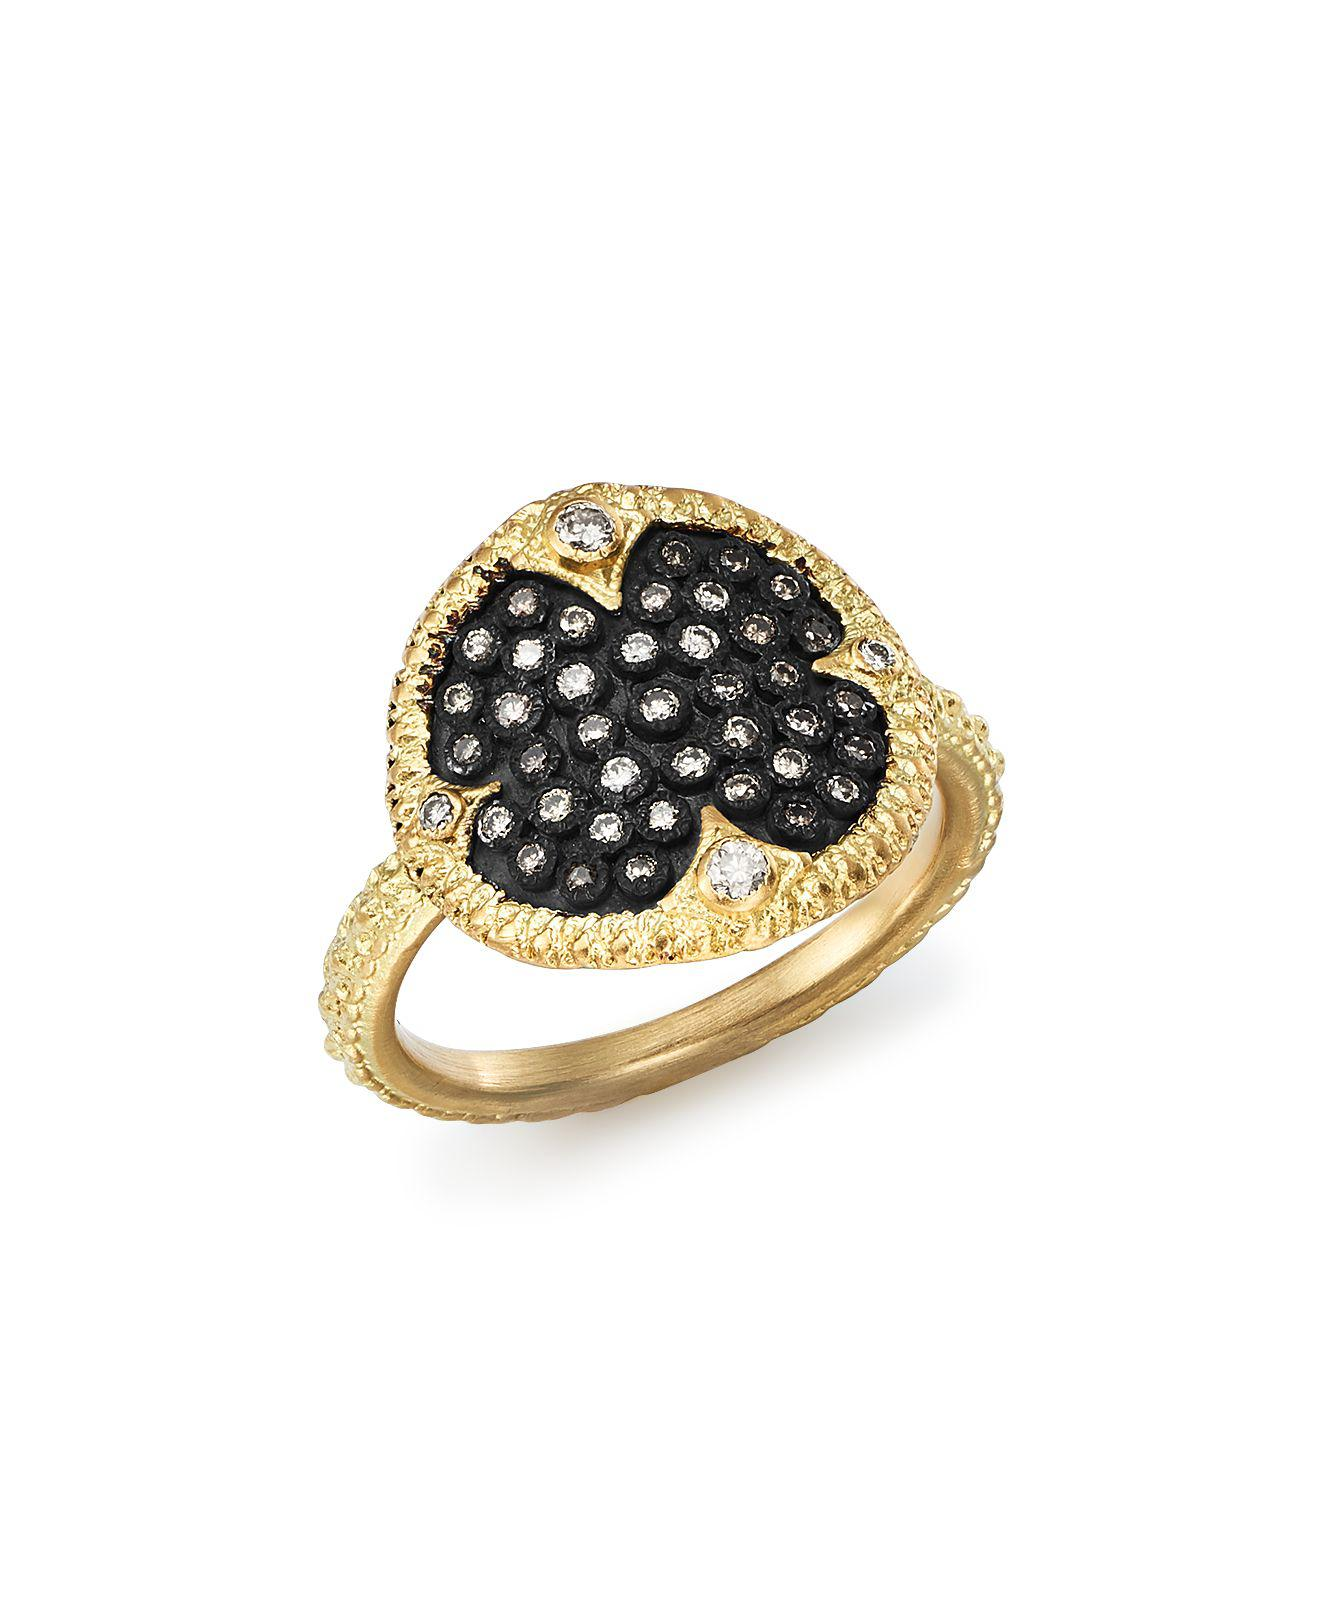 Armenta New World Pavé Scroll Ring with Champagne Diamonds & Black Sapphires zIVMDNoP